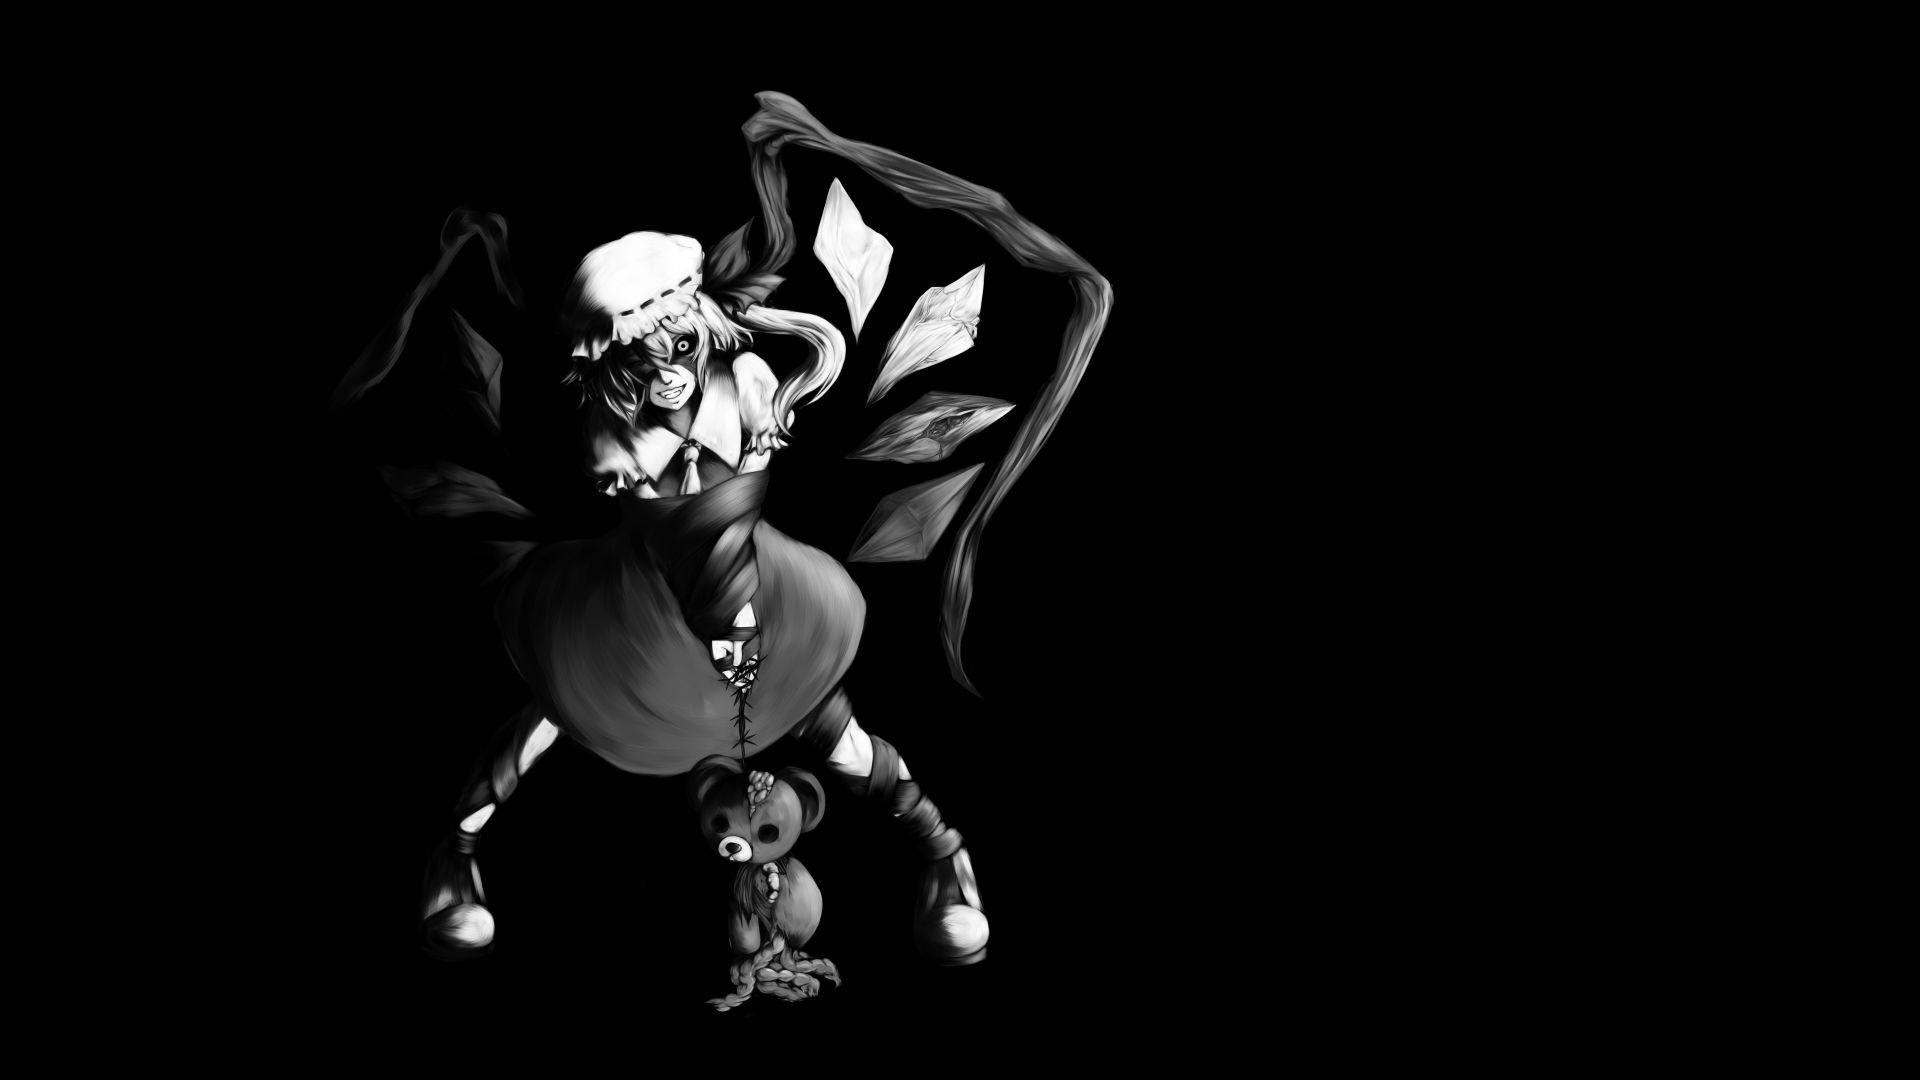 Black Anime Wallpapers - Wallpaper Cave